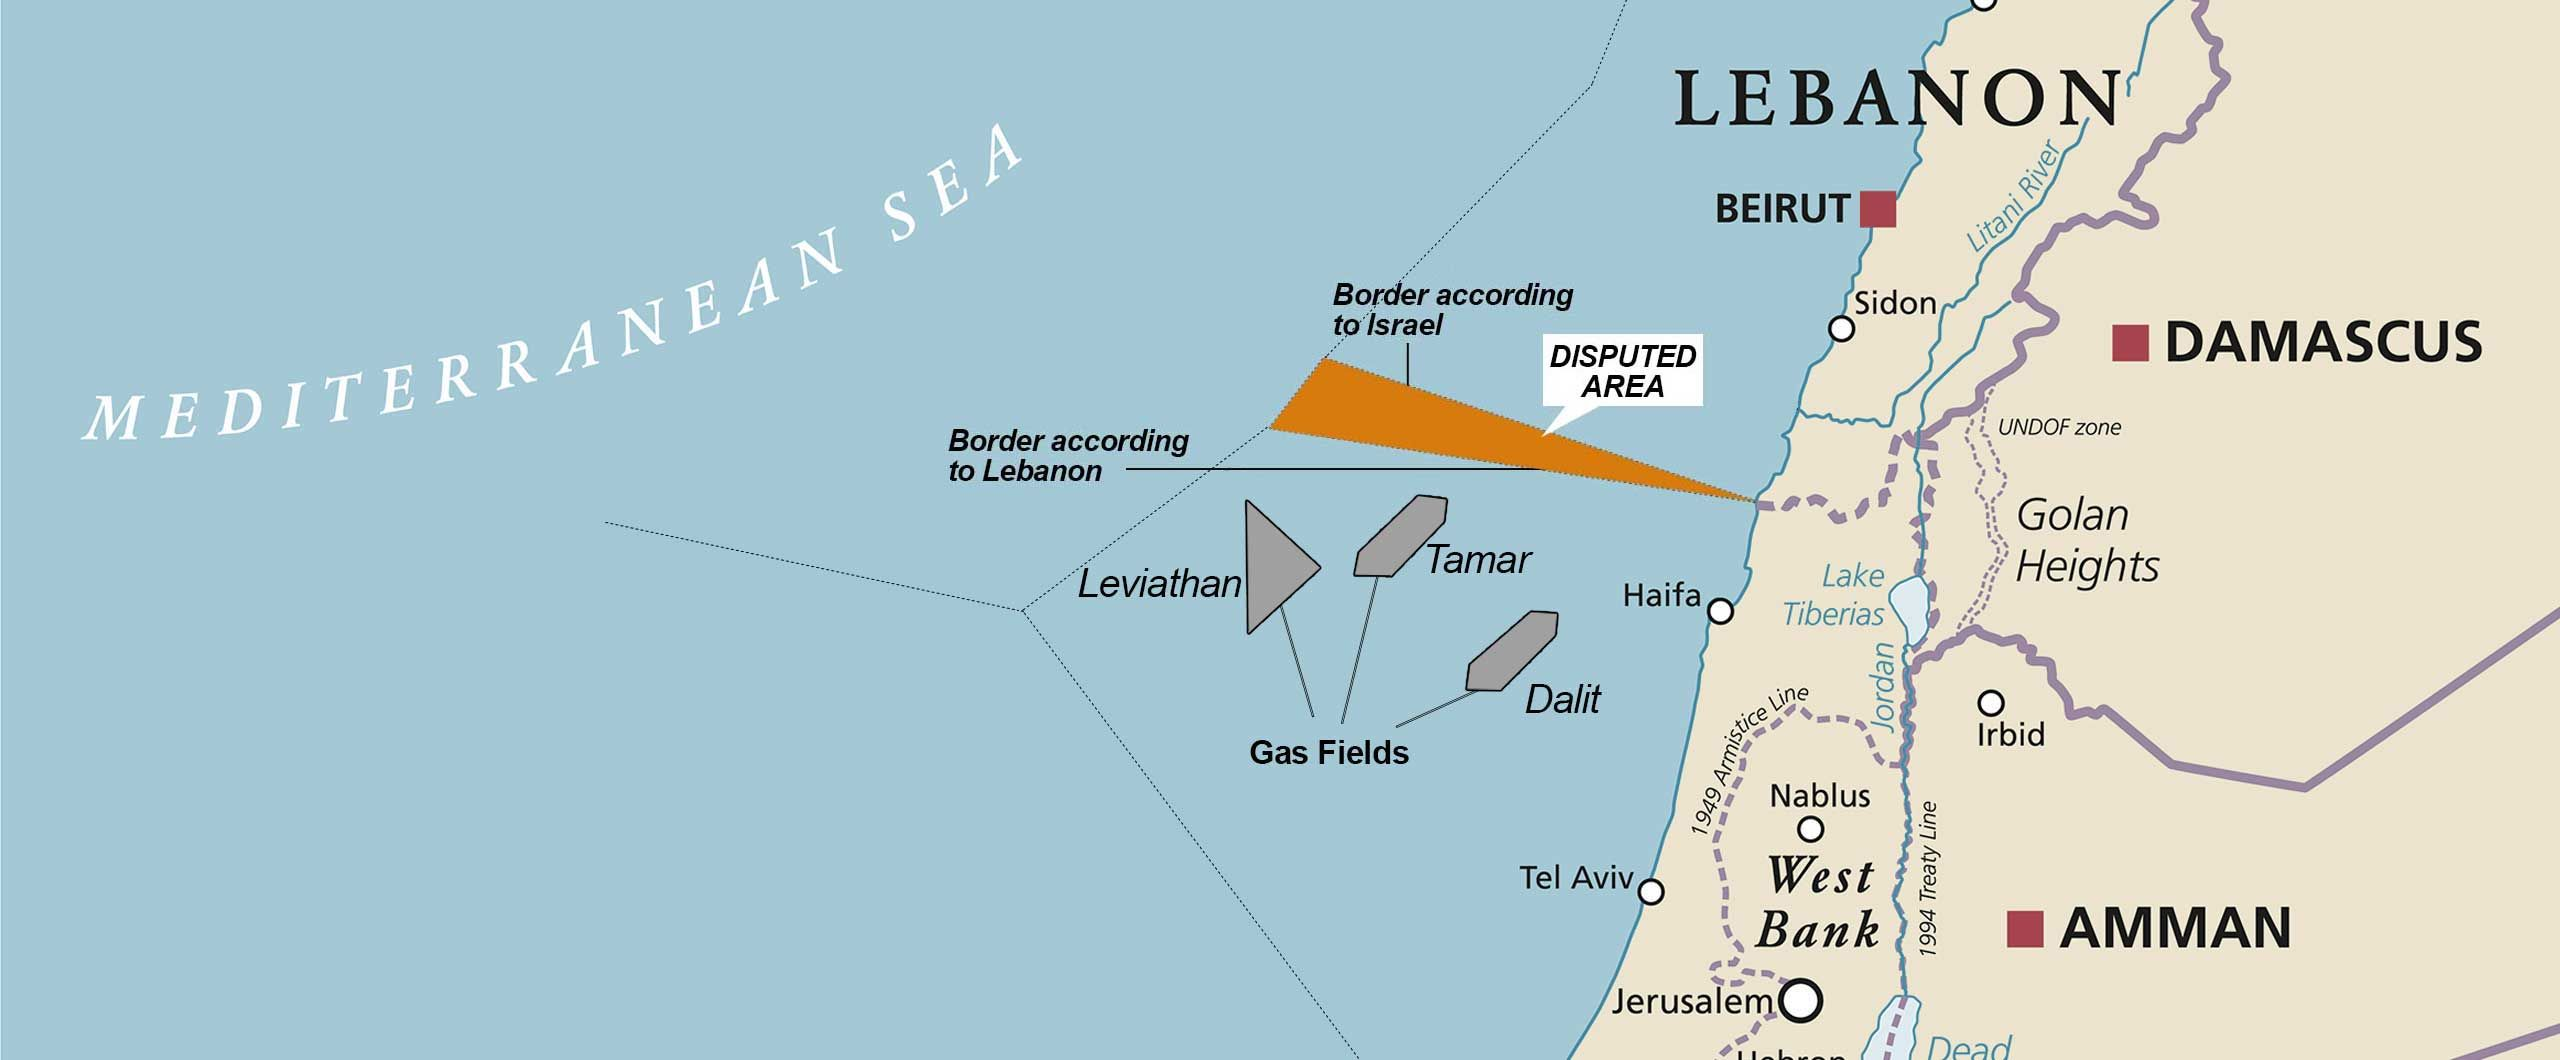 Disputed Oil Block 9 between Lebanon and Israel